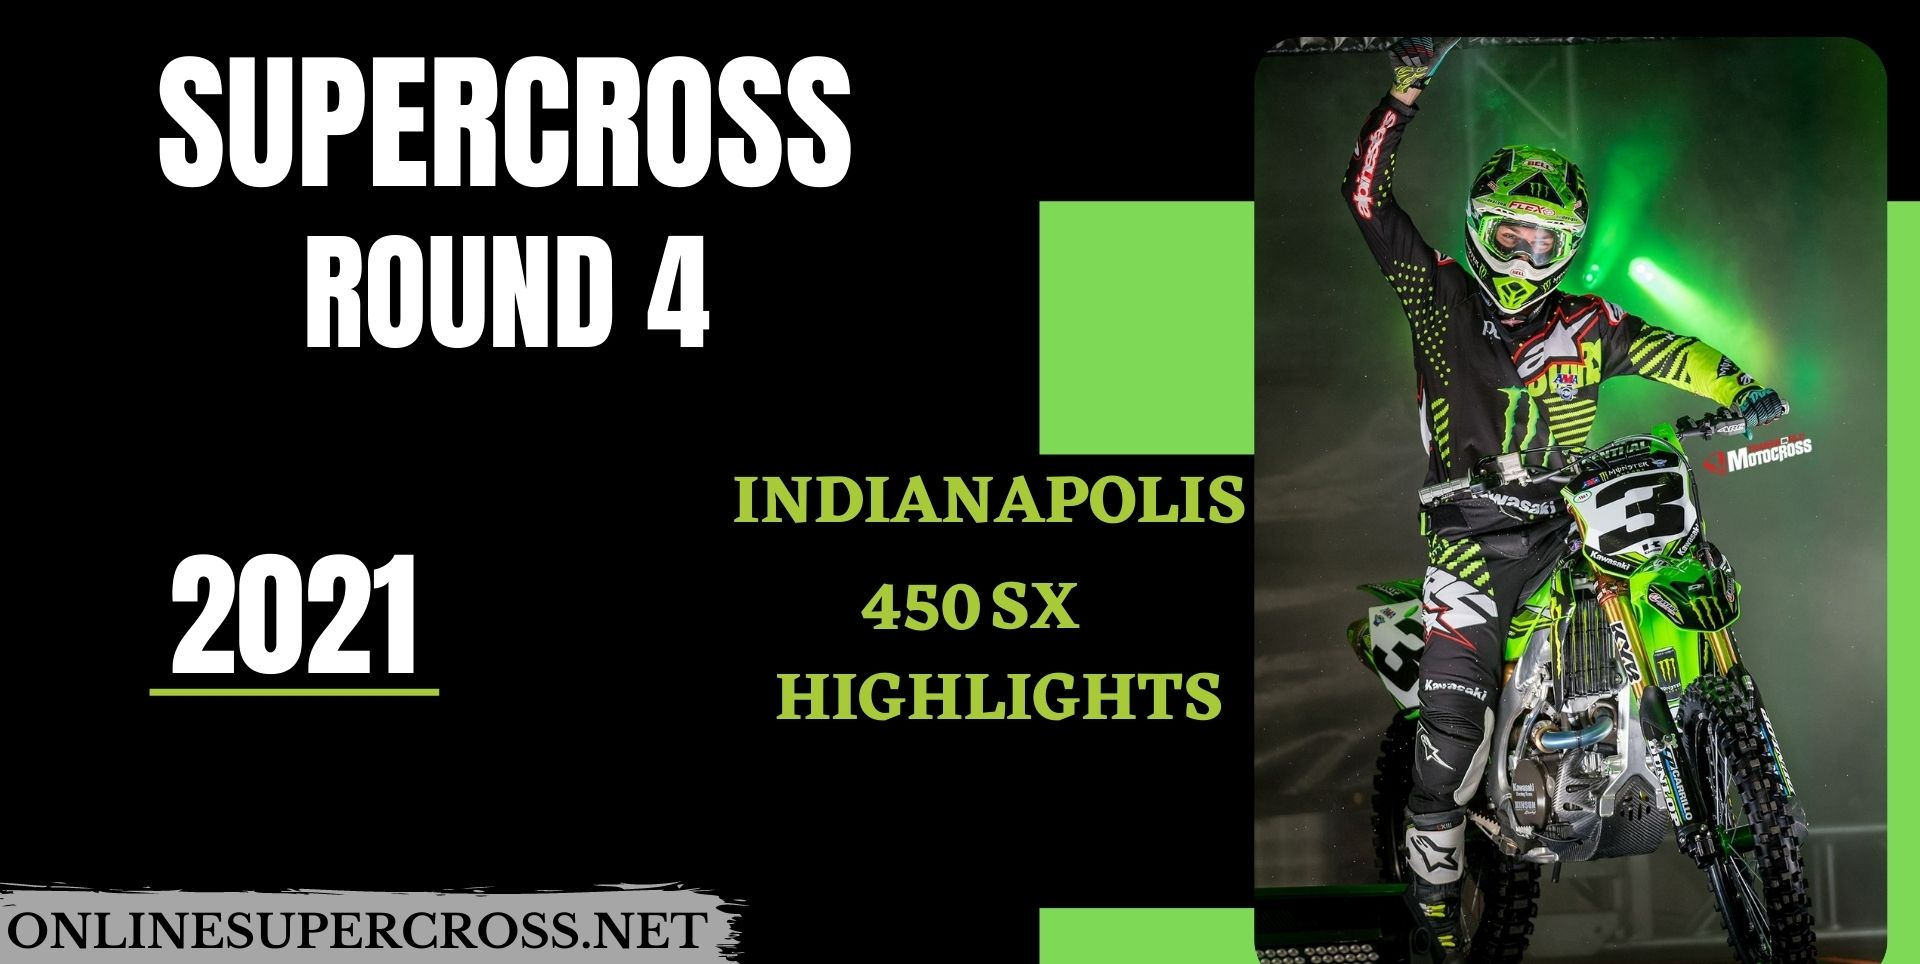 Indianapolis Round 4 Supercross 450SX Highlights 2021